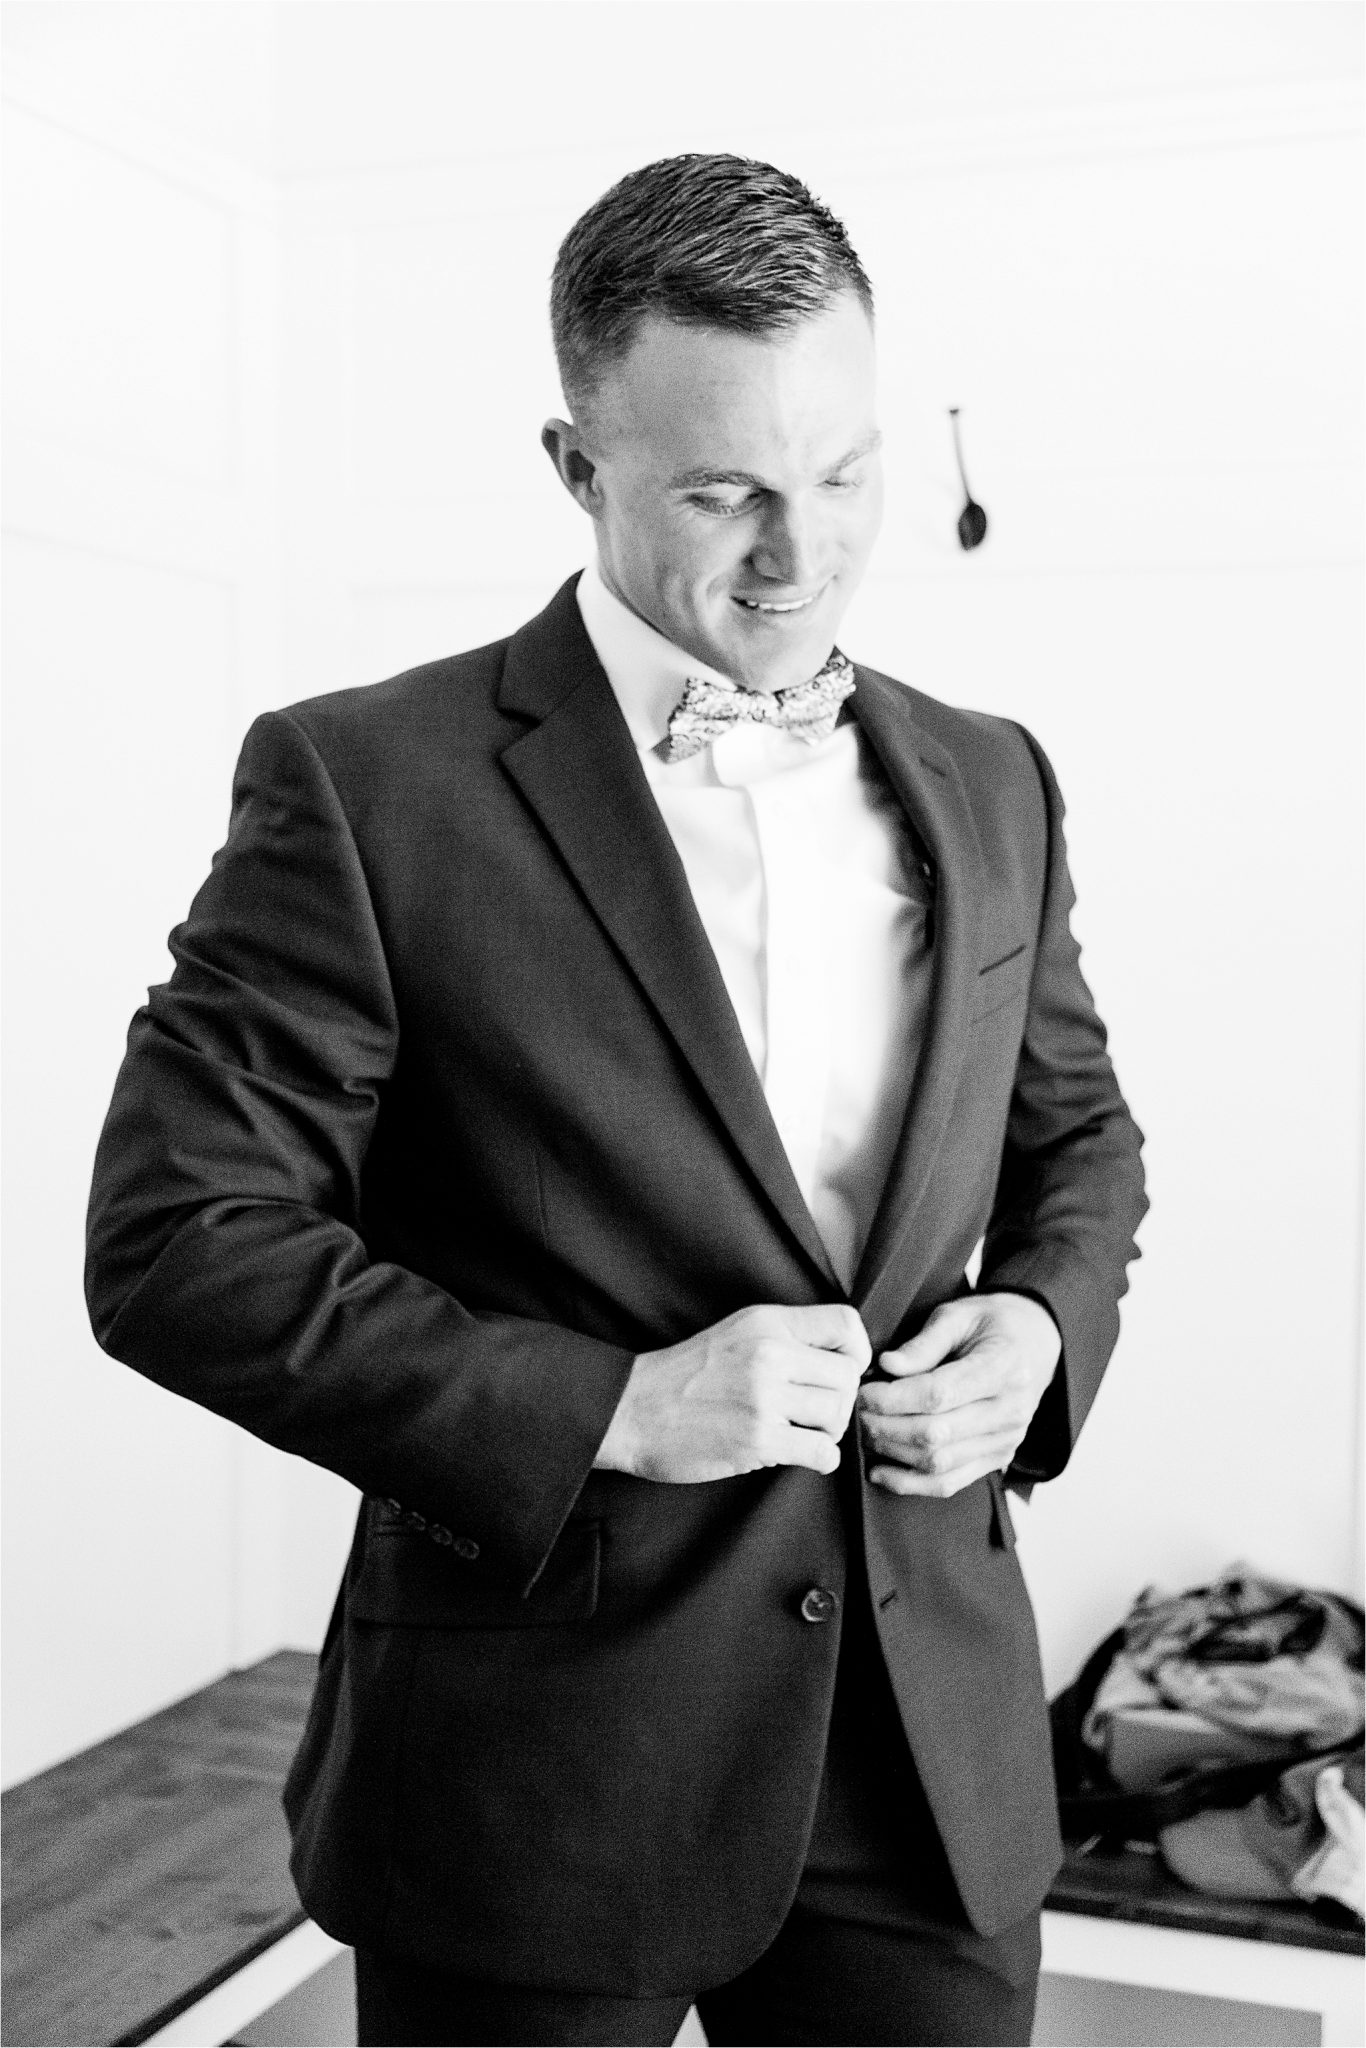 groom-getting-ready-fitted-suit-bow-tie-handsome